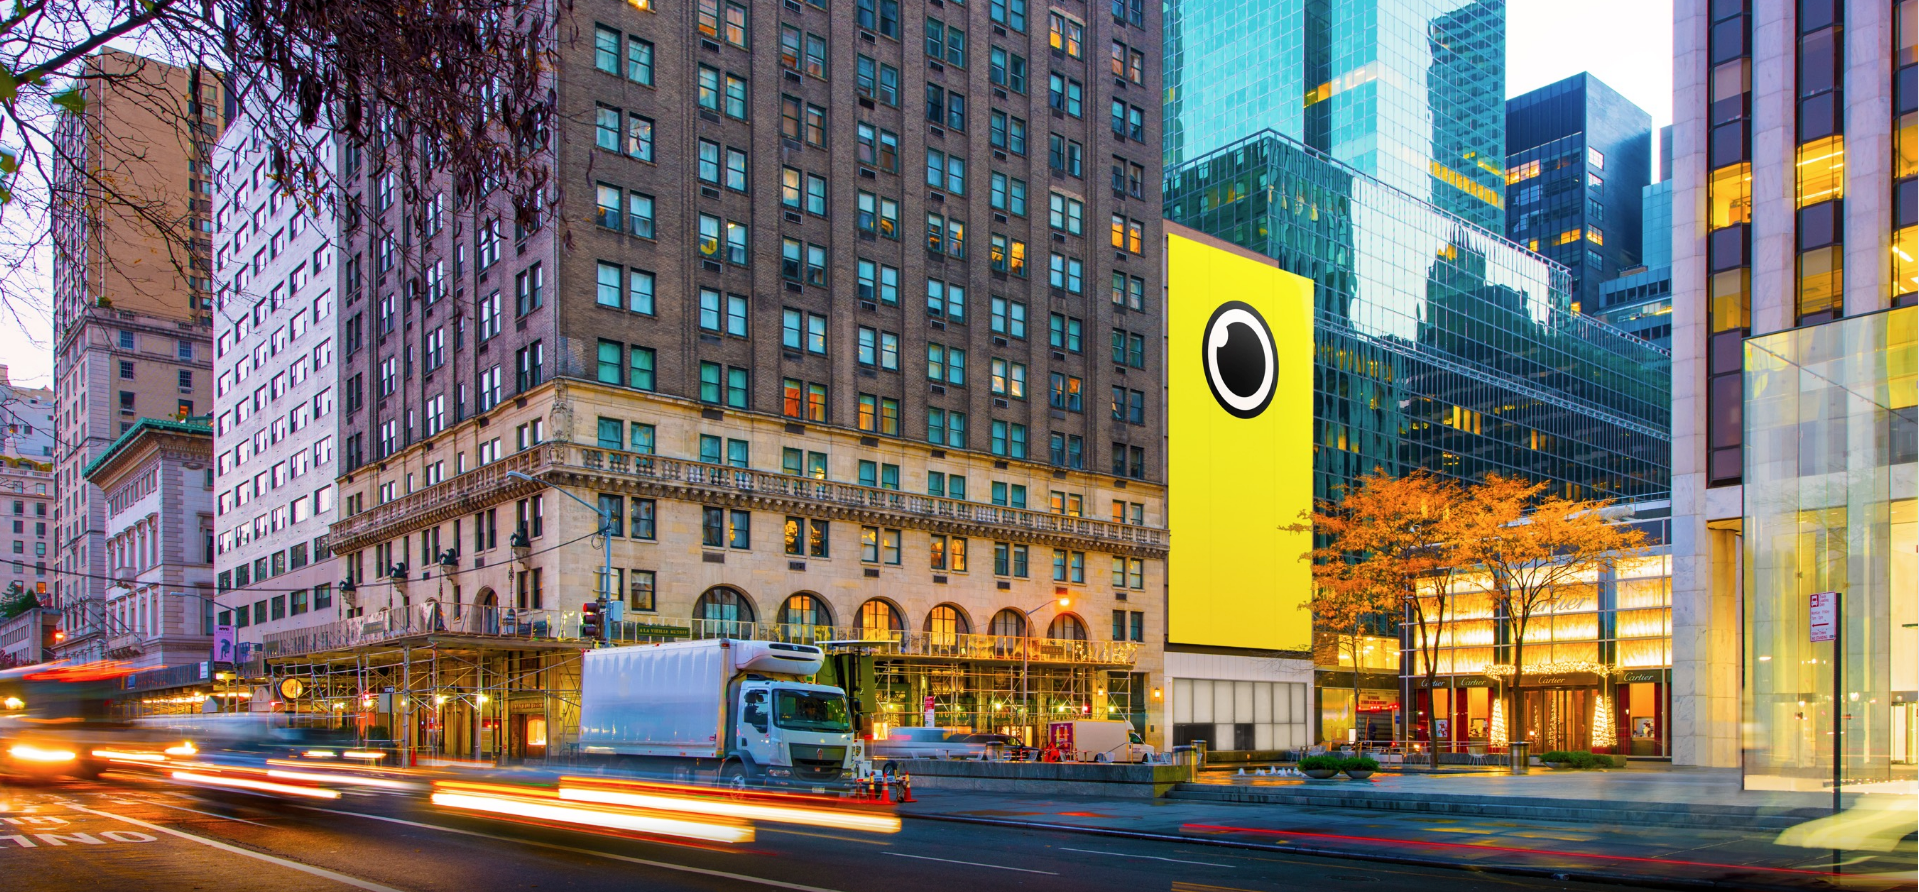 The Snap Spectacles pop-up store in Midtown Manhattan.